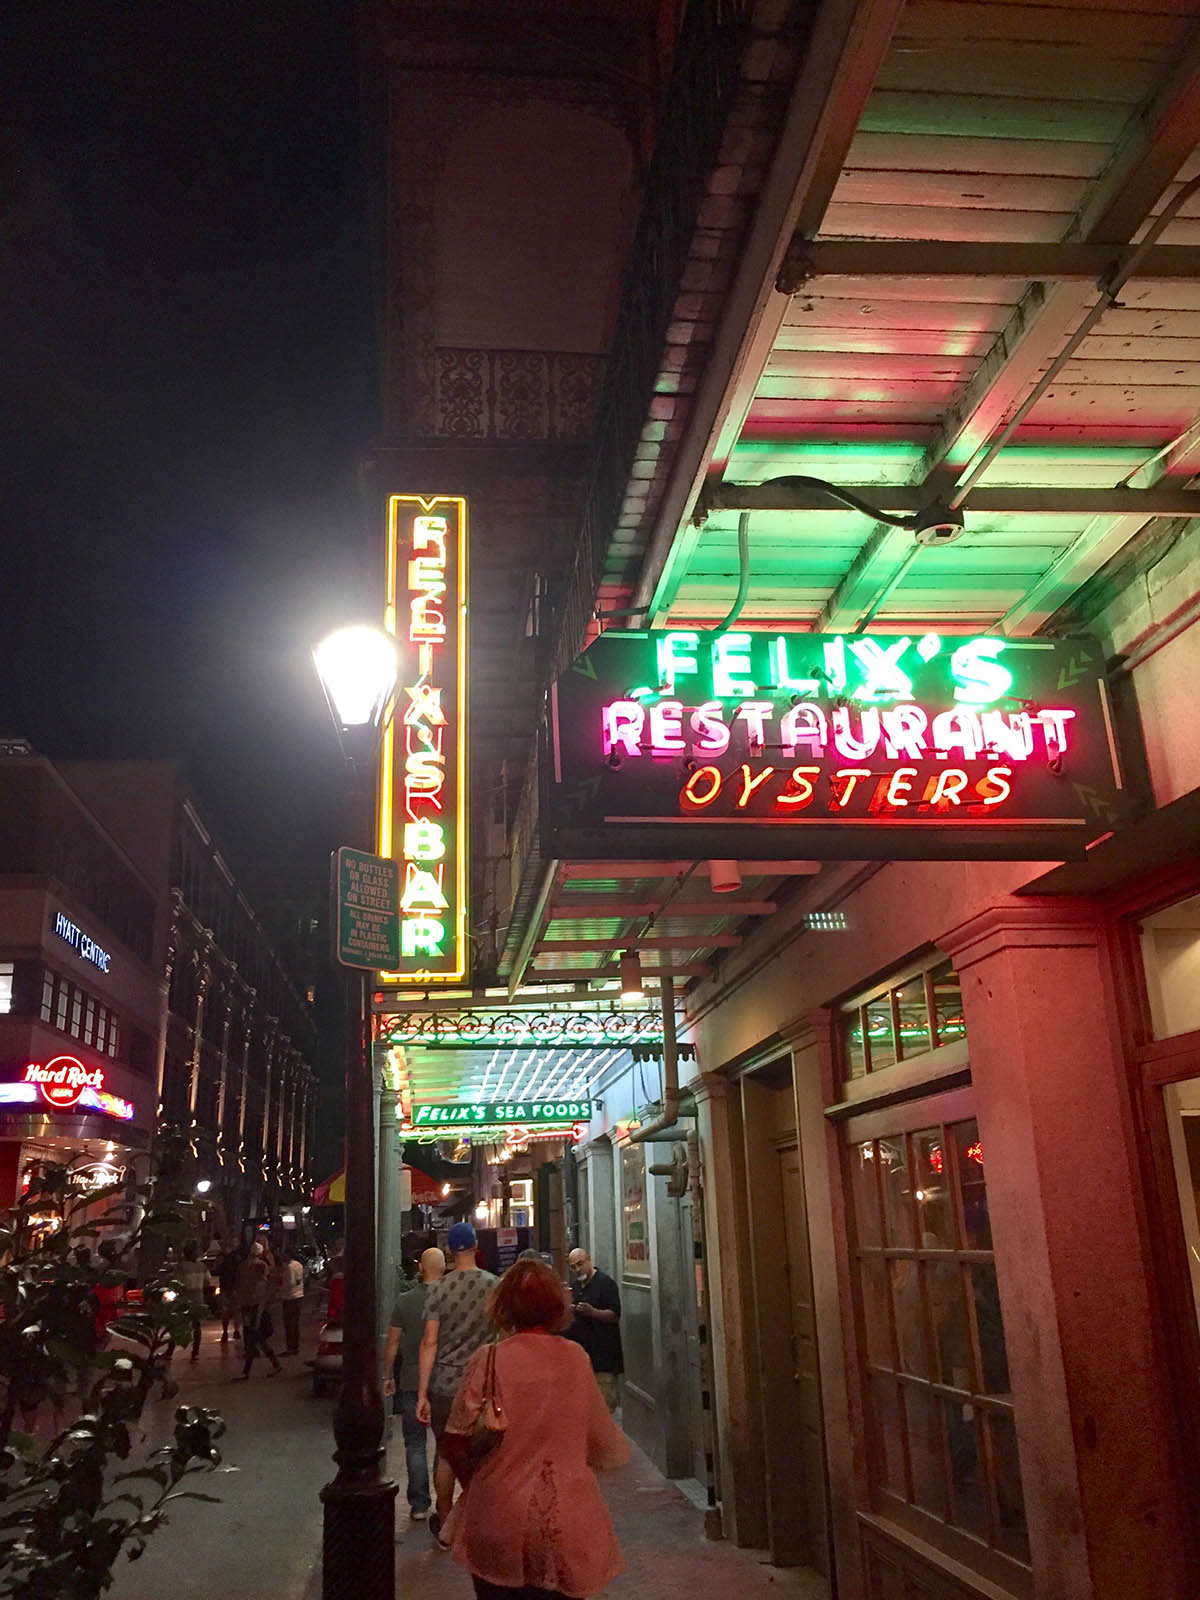 Felix's Restaurant and Oyster Bar in New Orleans, LA